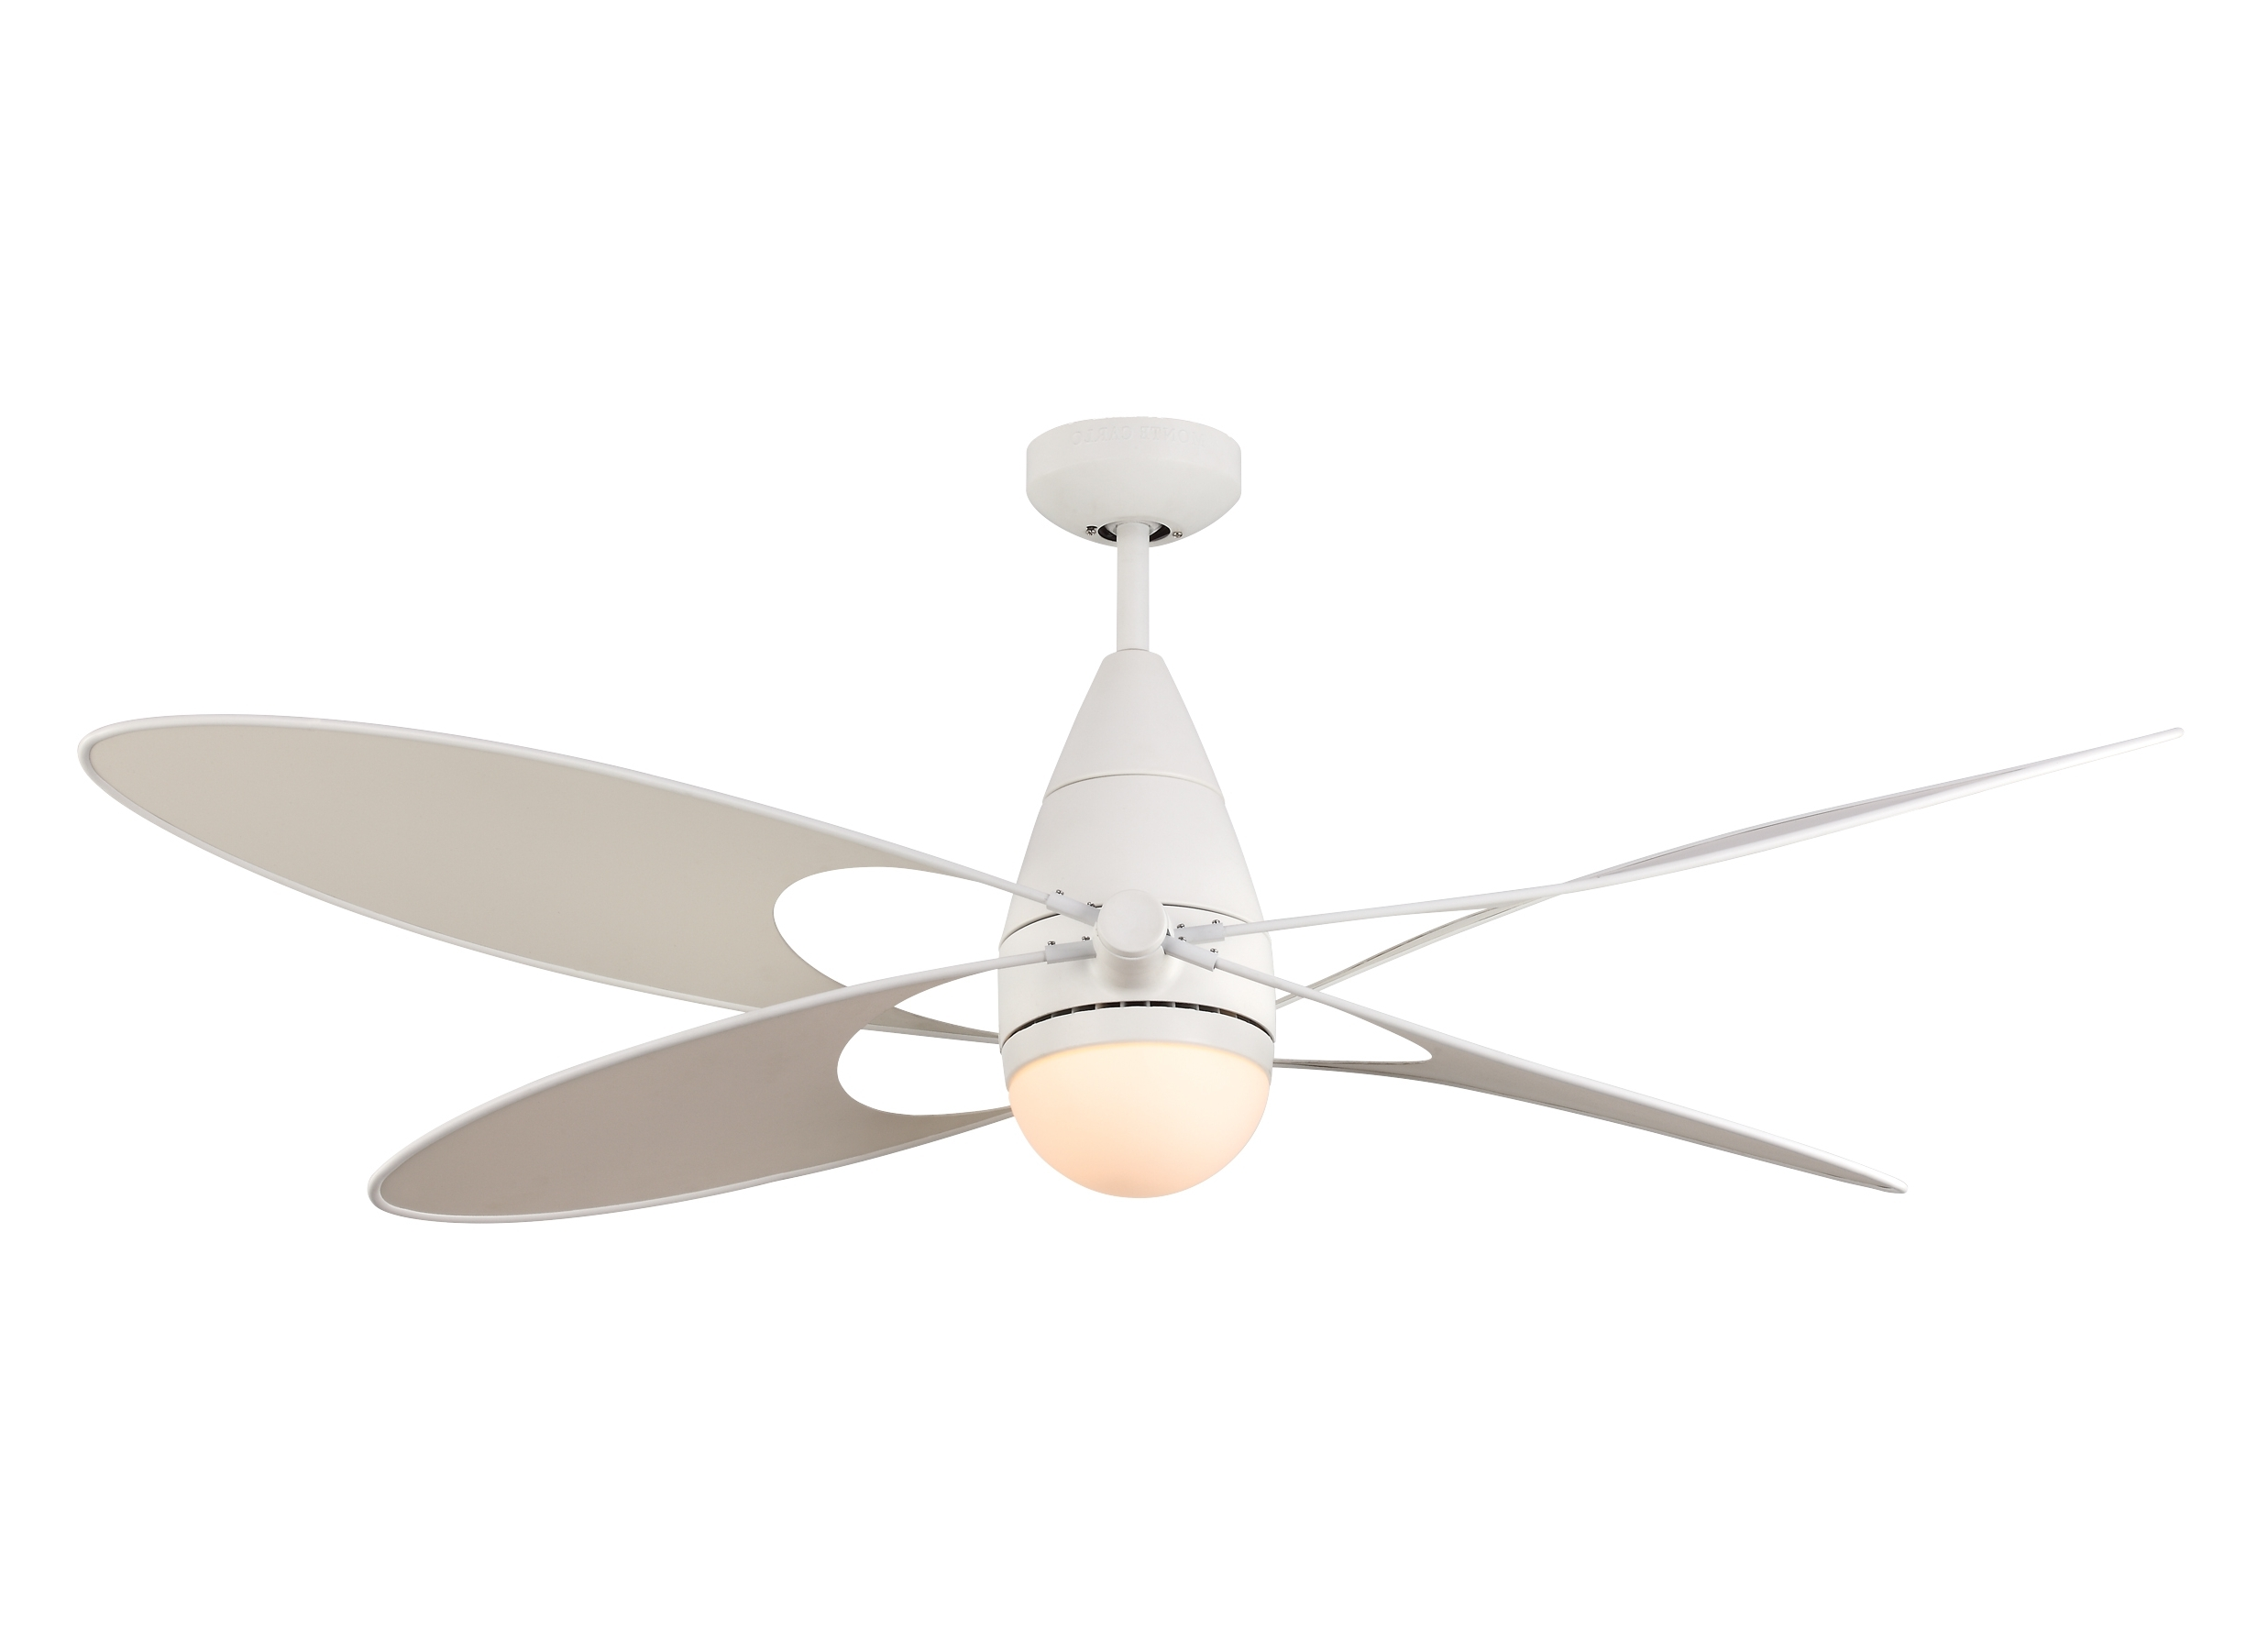 Outdoor Ceiling Fans At Menards Pertaining To Most Recently Released Lamps: Exciting Menards Ceiling Fans For Best Ceiling Fan (View 15 of 20)